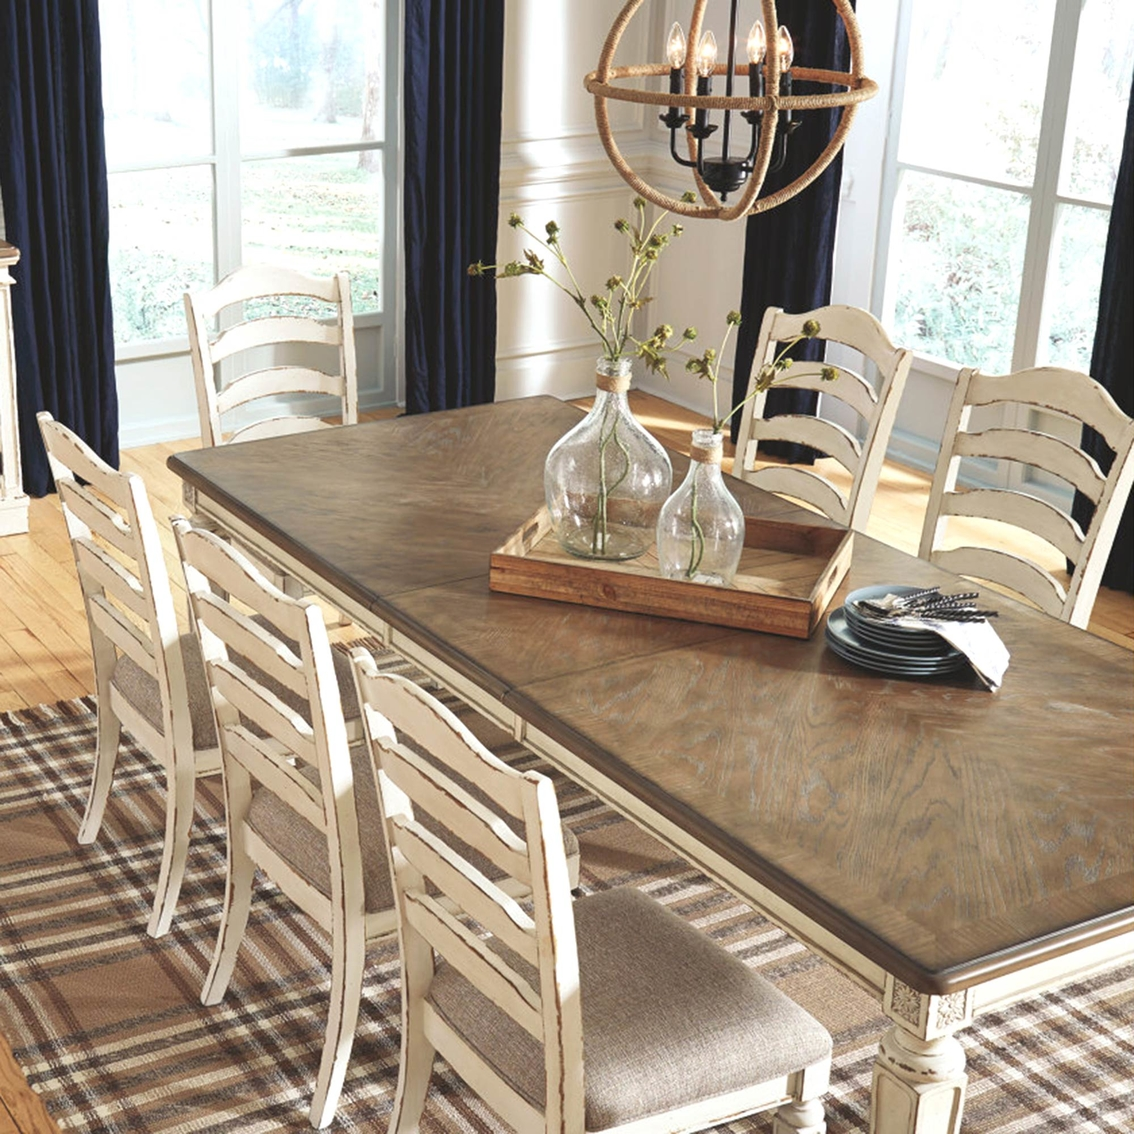 Signature Design By Ashley Realyn 9 Pc Rectangular Ladder Back Chair Dining Set Dining Sets Furniture Appliances Shop The Exchange